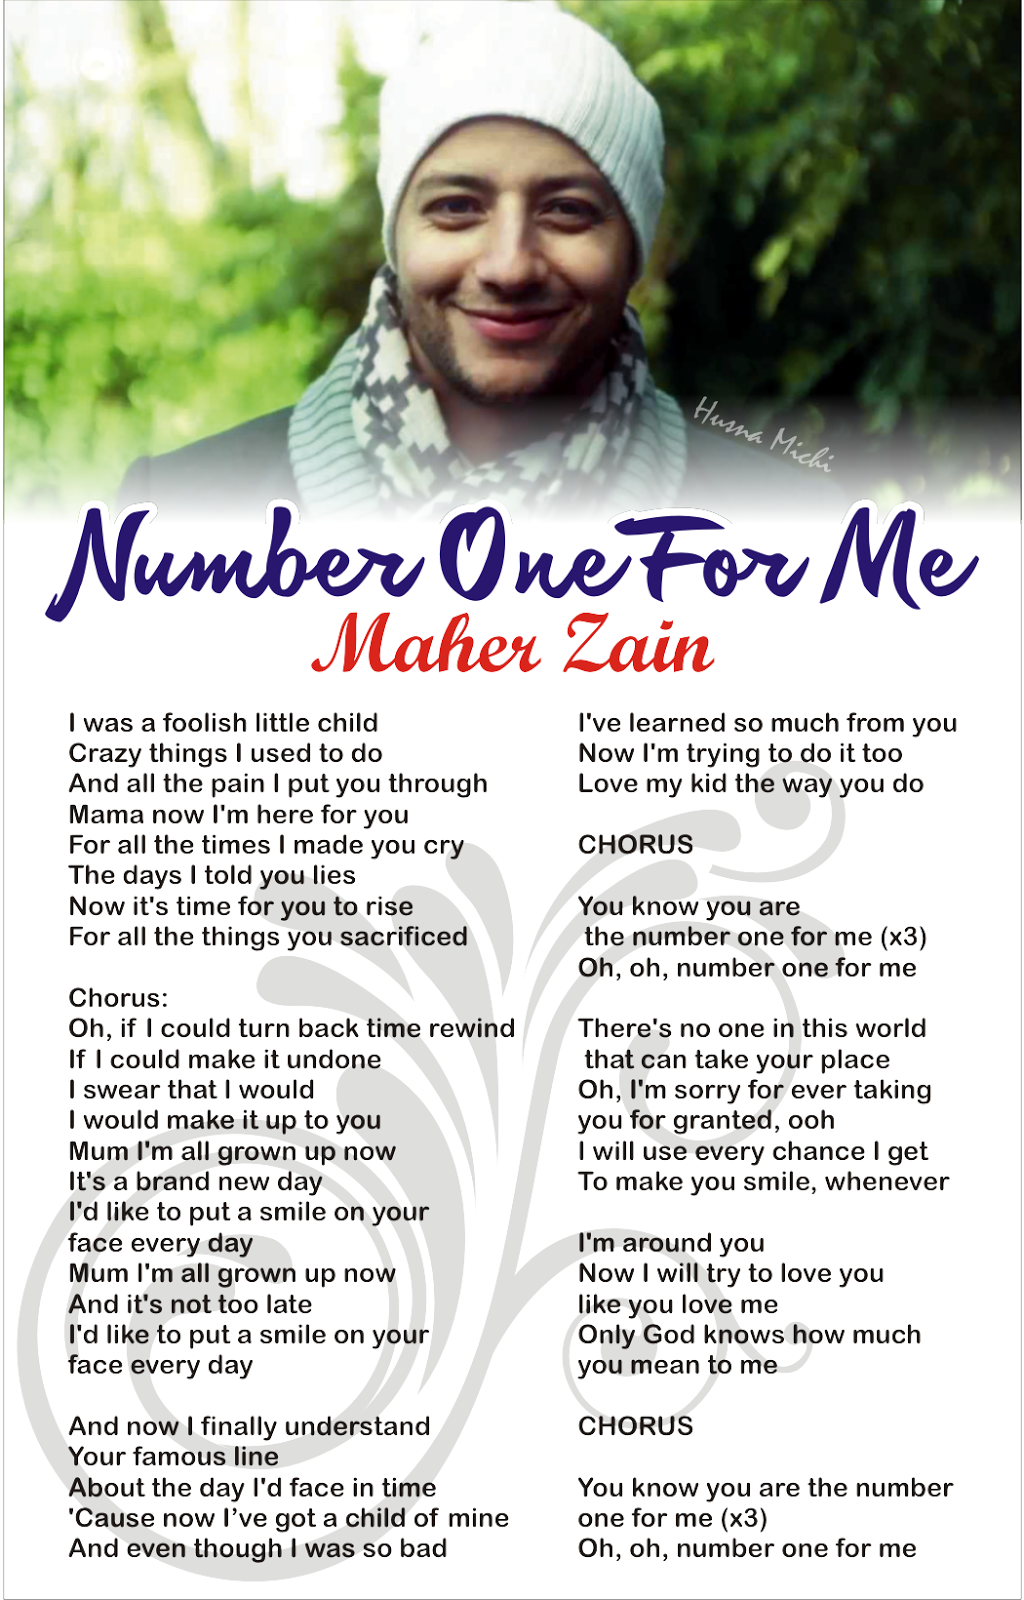 Maher zain number one for me